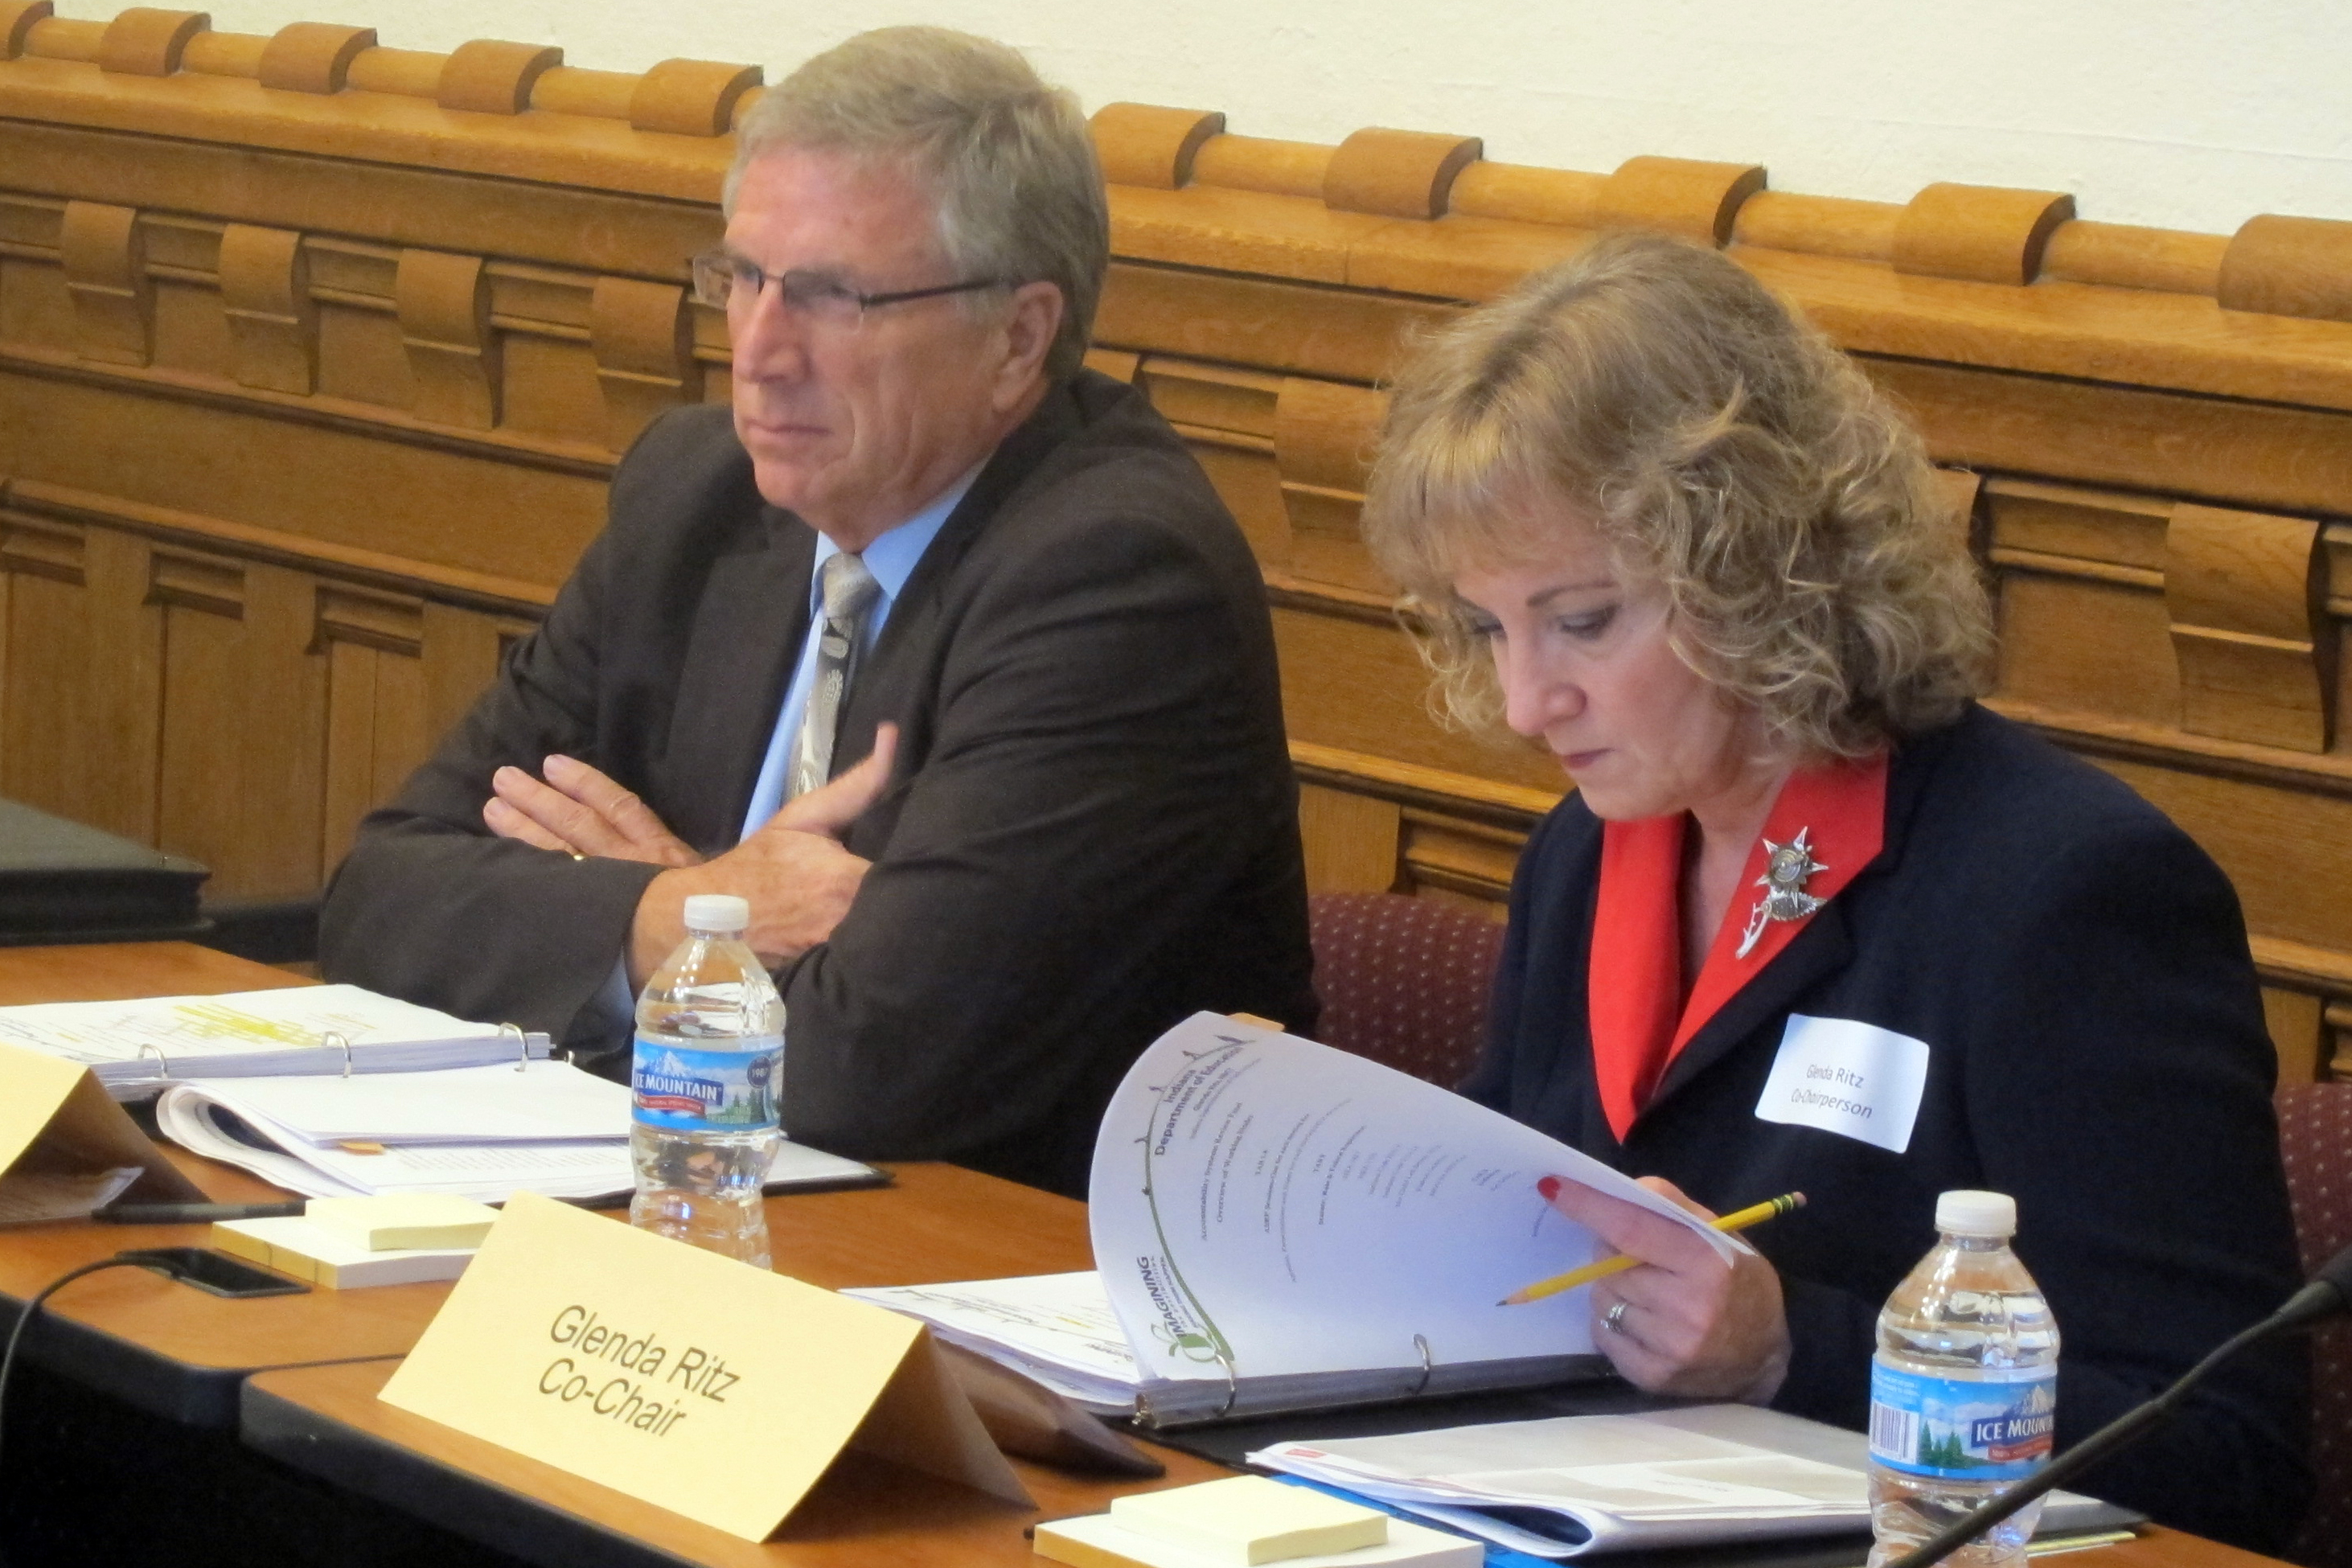 State Superintendent Glenda Ritz, right, and Southwest Allen Schools Superintendent Steven Yager co-chair the panel tasked with reviewing Indiana's A-F accountability system.